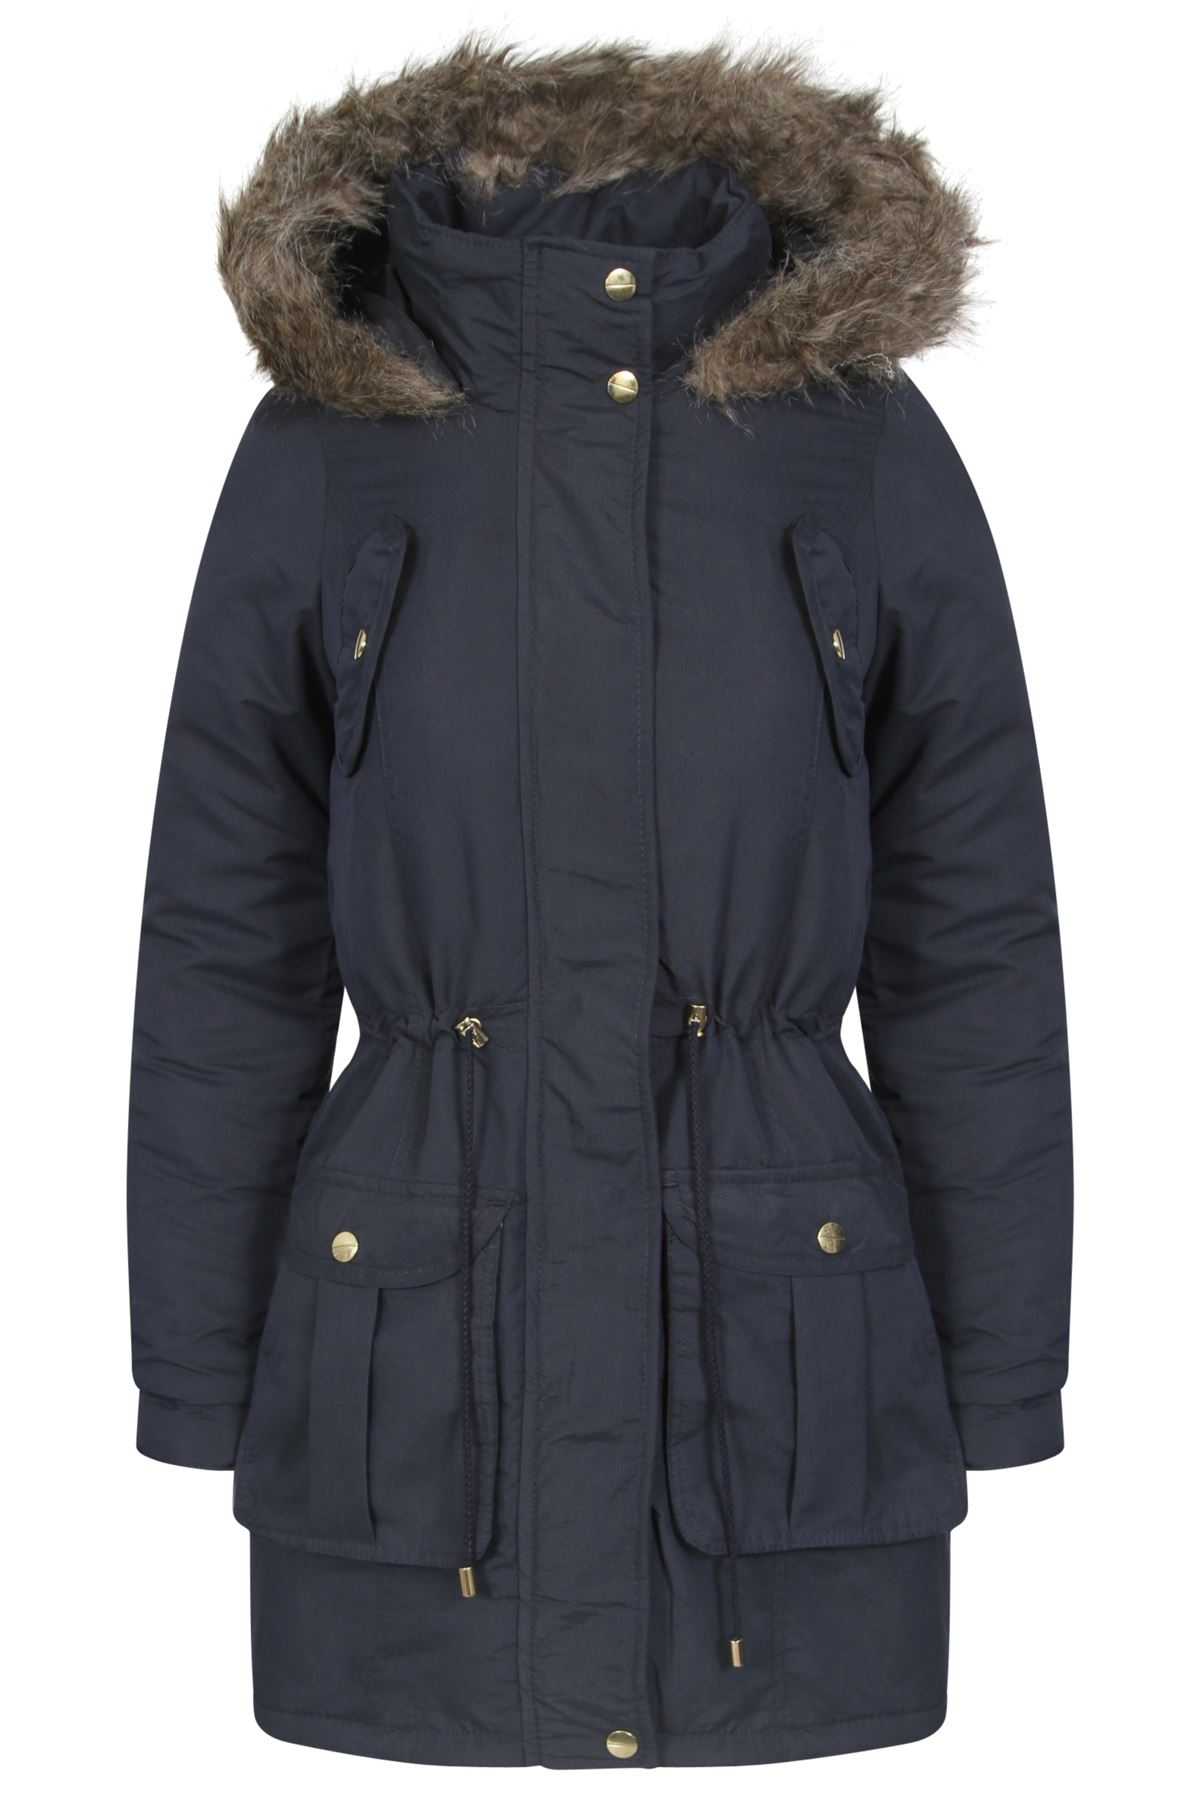 Womens Fur Trimmed Jackets